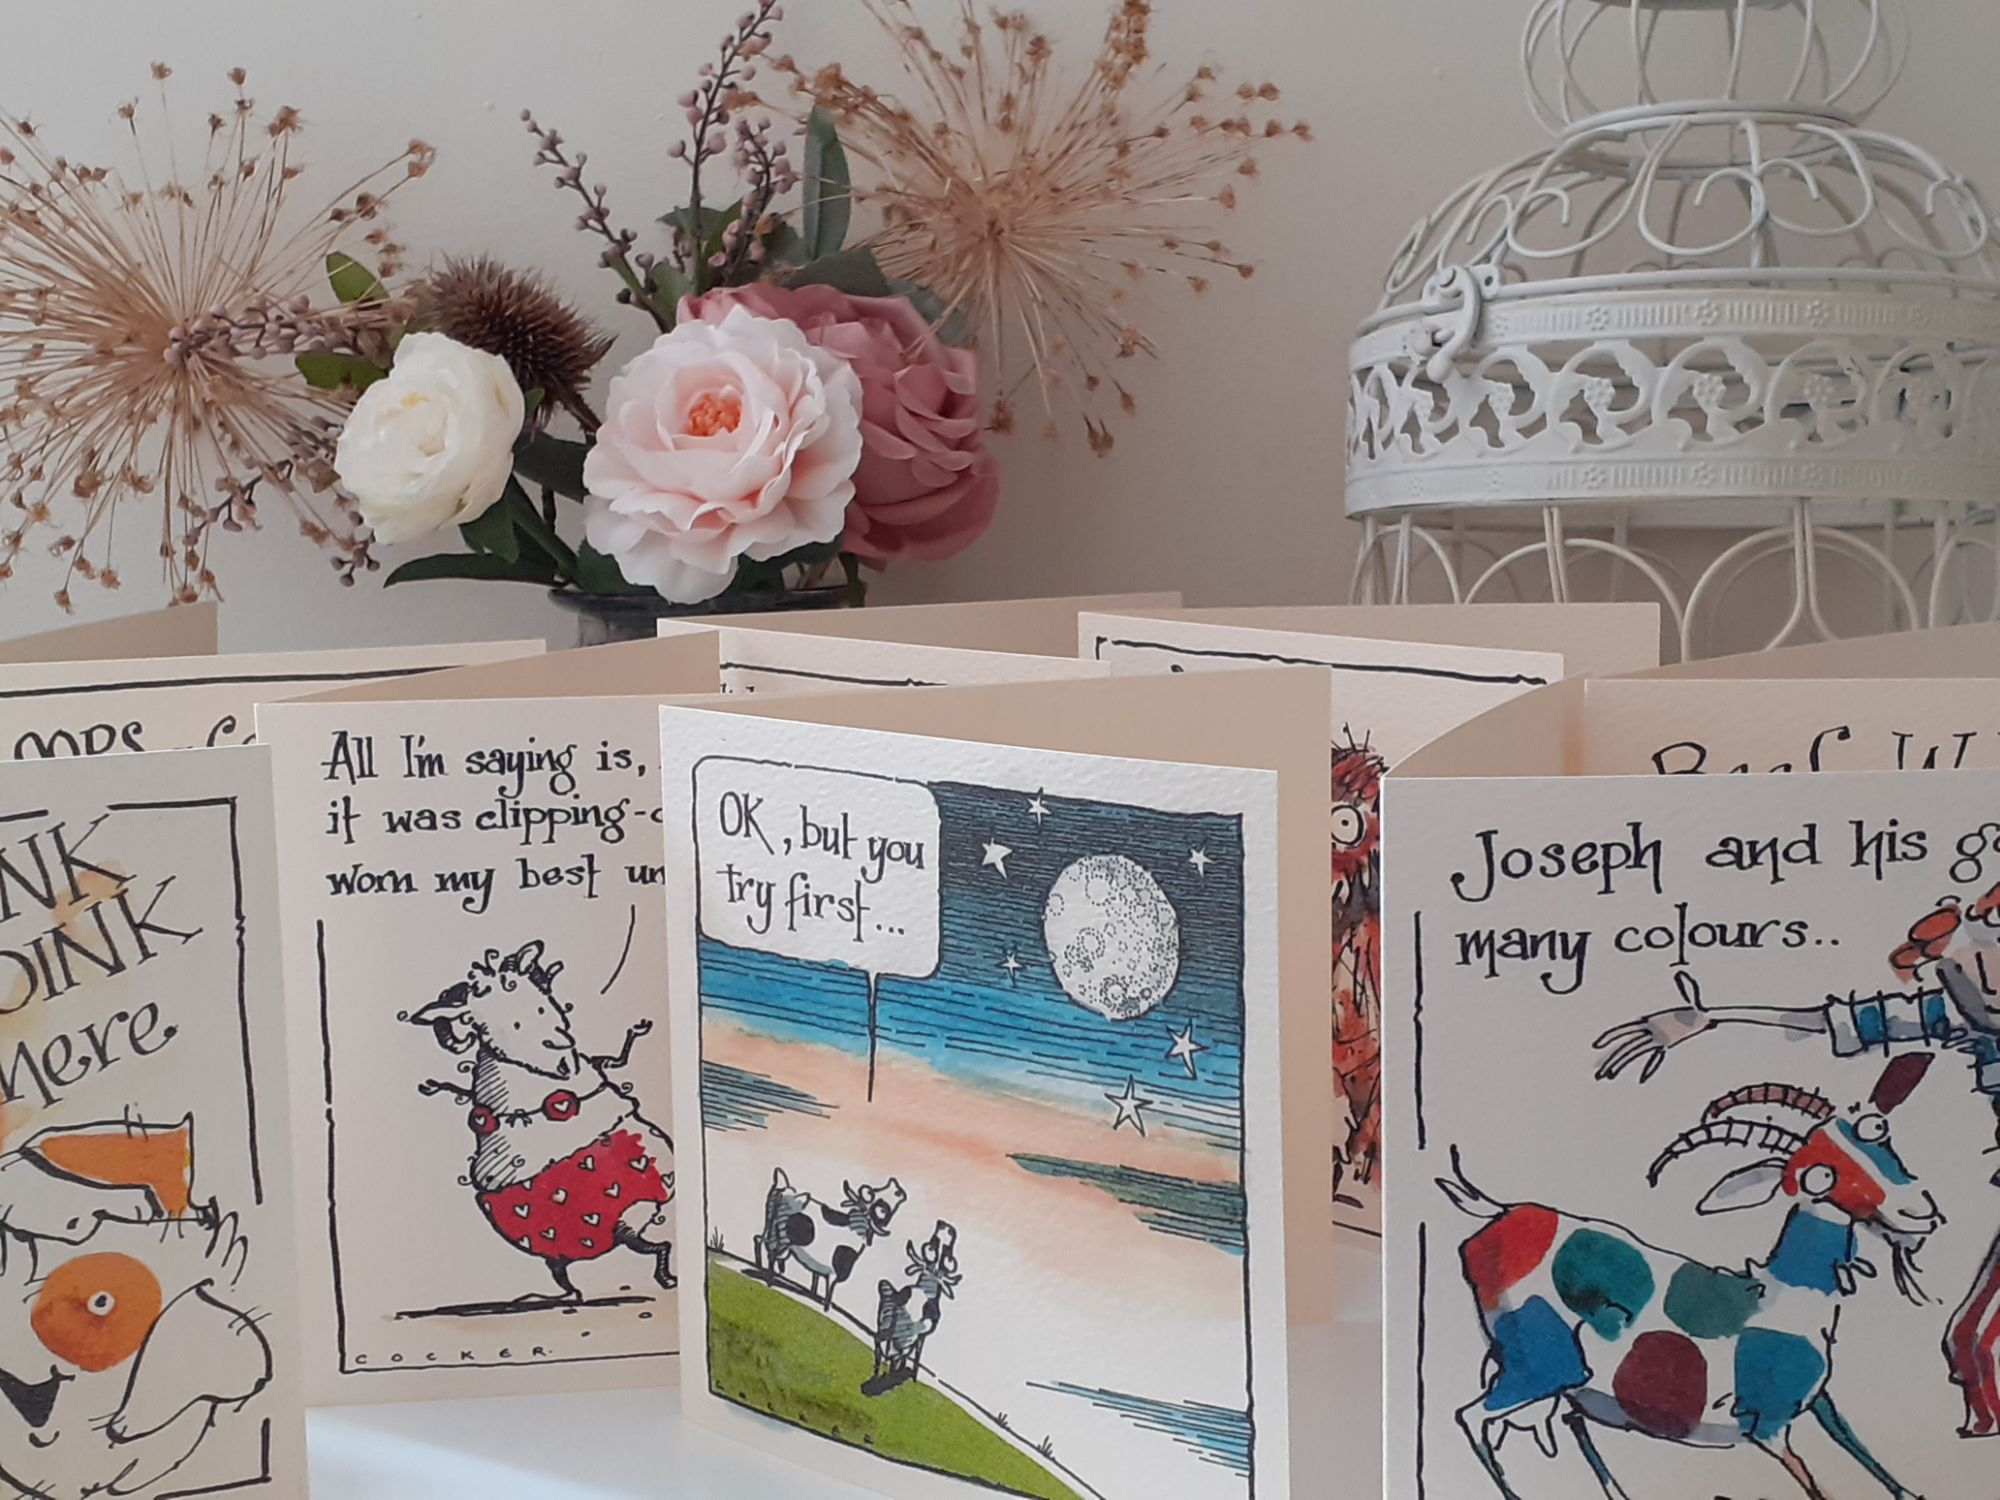 a selection of funny farm animal related catroon cards.